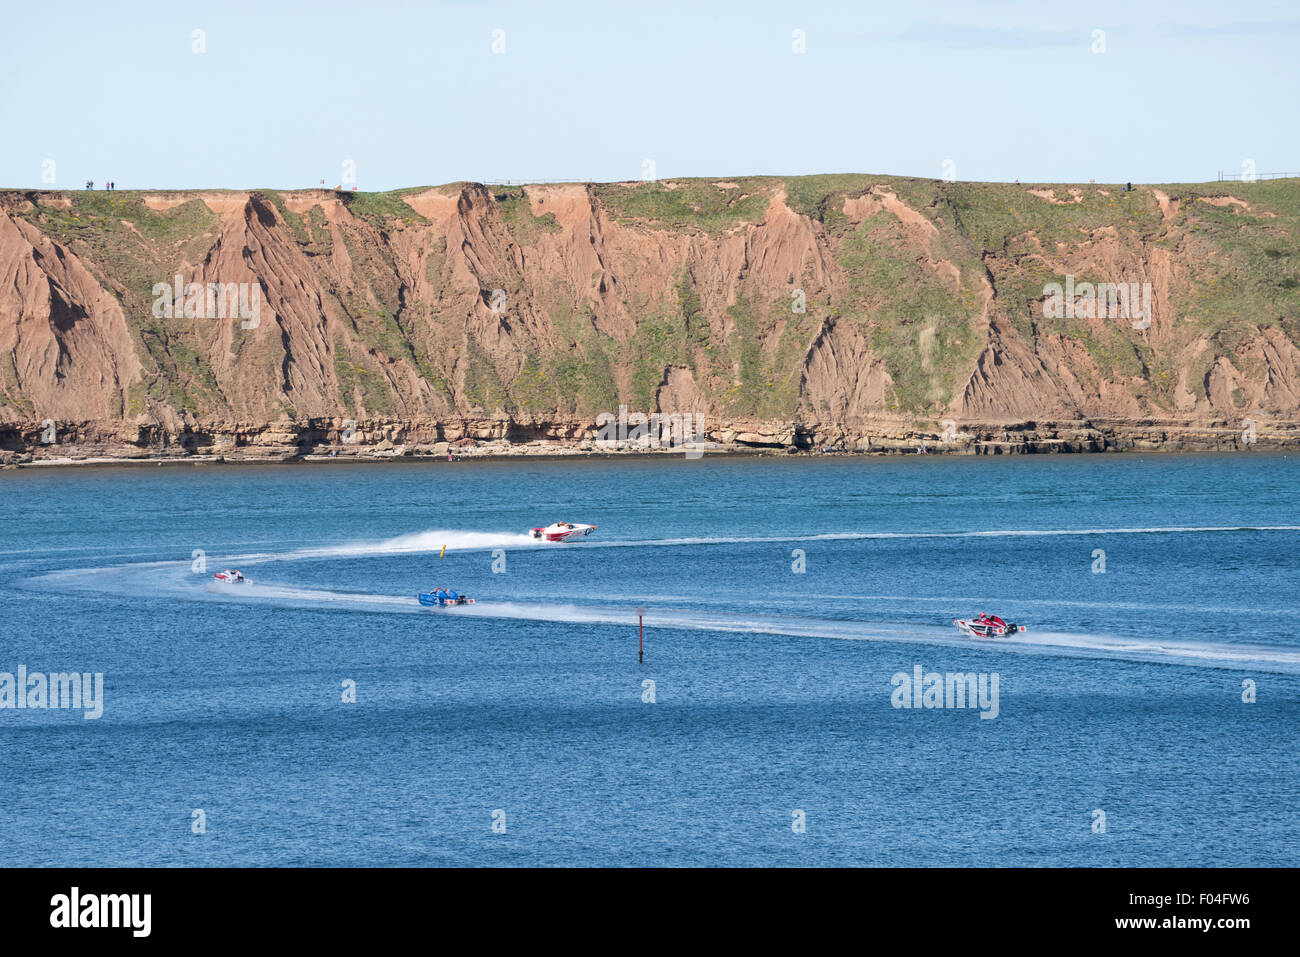 P1 Superstock Powerboat Racing visiting Filey Bay, North Yorkshire. - Stock Image